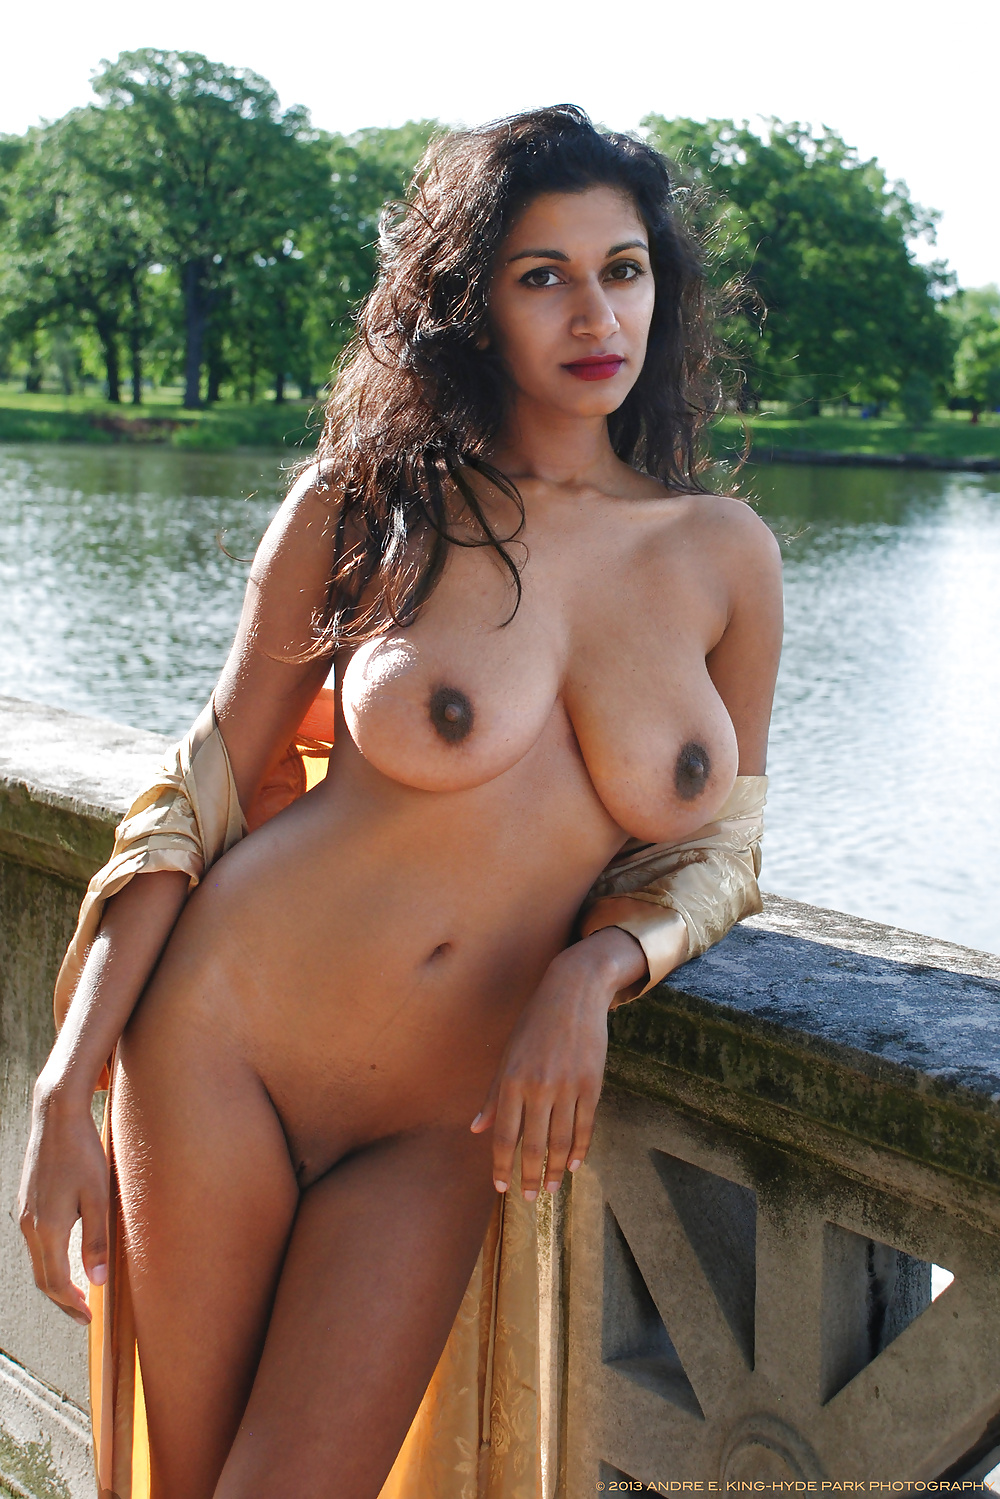 kolkata-naked-hot-girls-photos-female-with-the-fattest-pussy